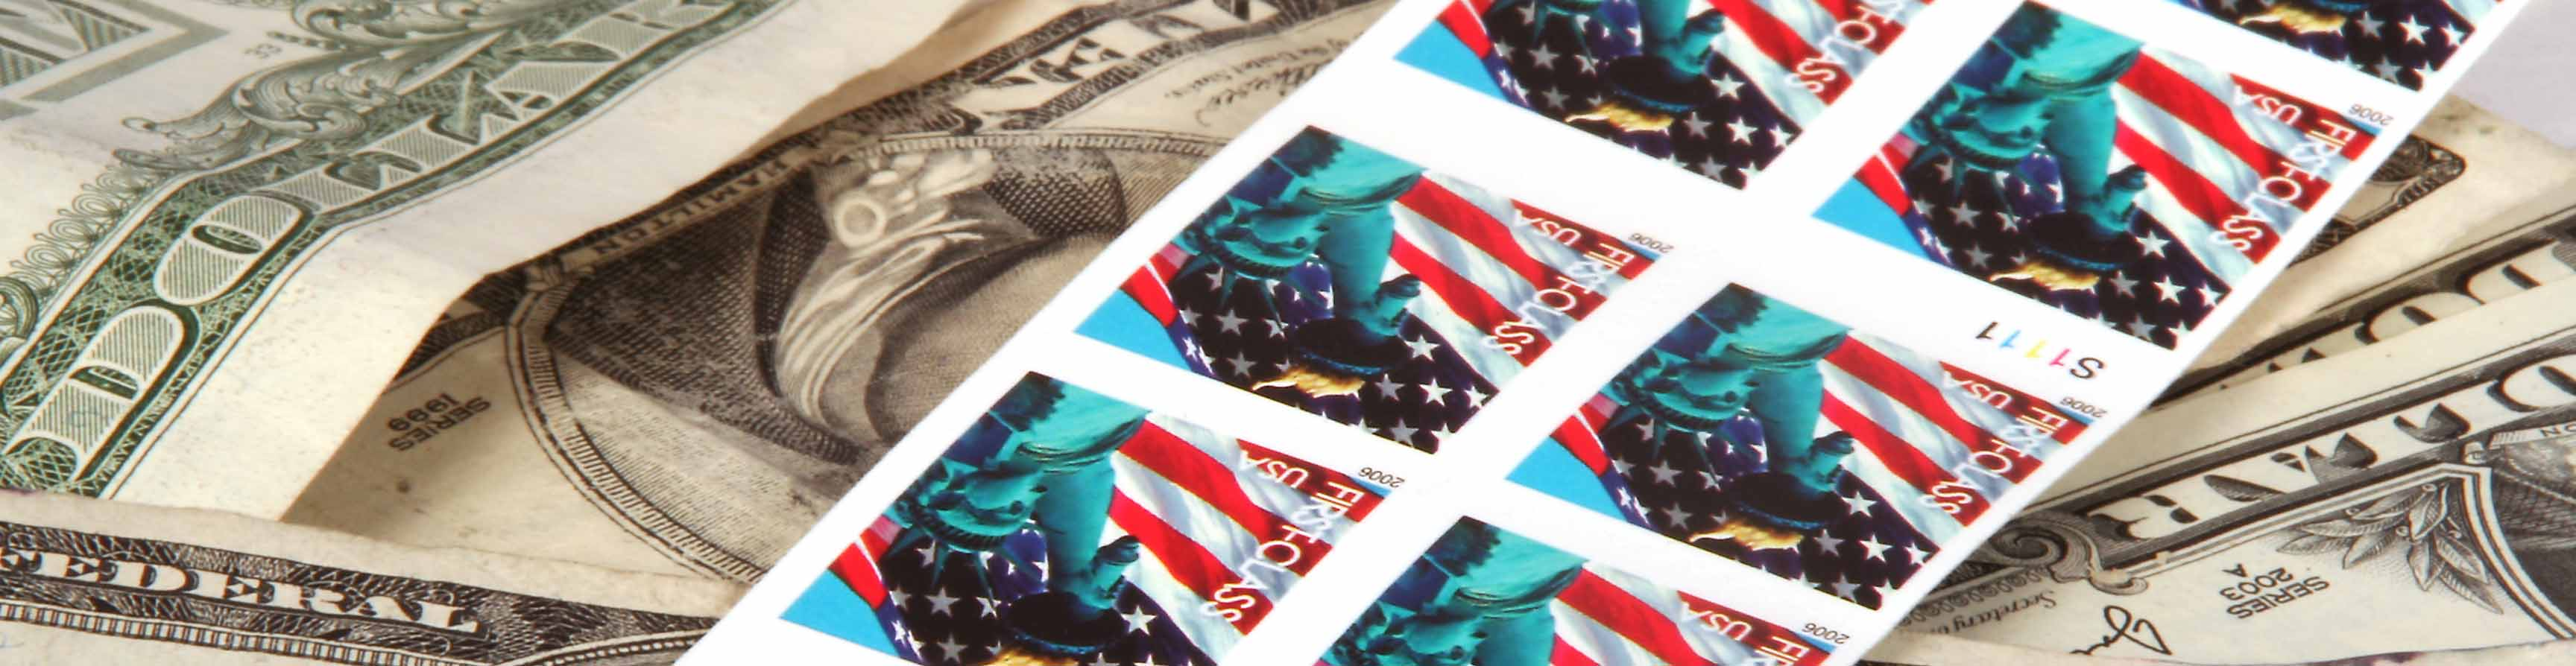 postage_stamps.jpg